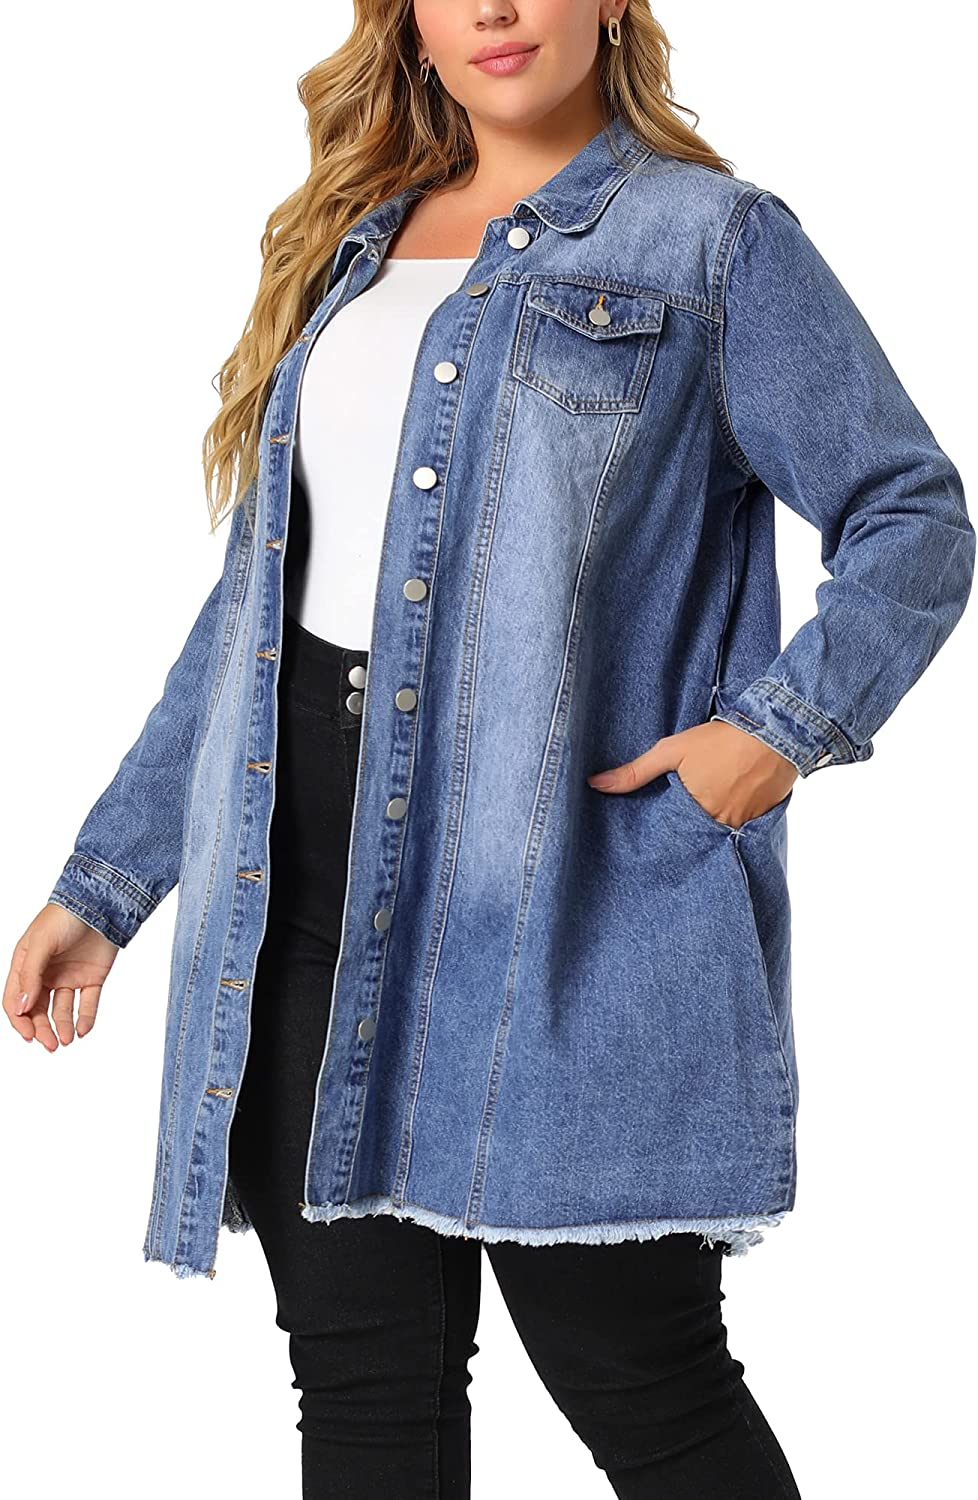 Agnes Orinda Plus Size Denim Jackets for Women Long Sleeve Button Down Ripped Long Jeans Jacket